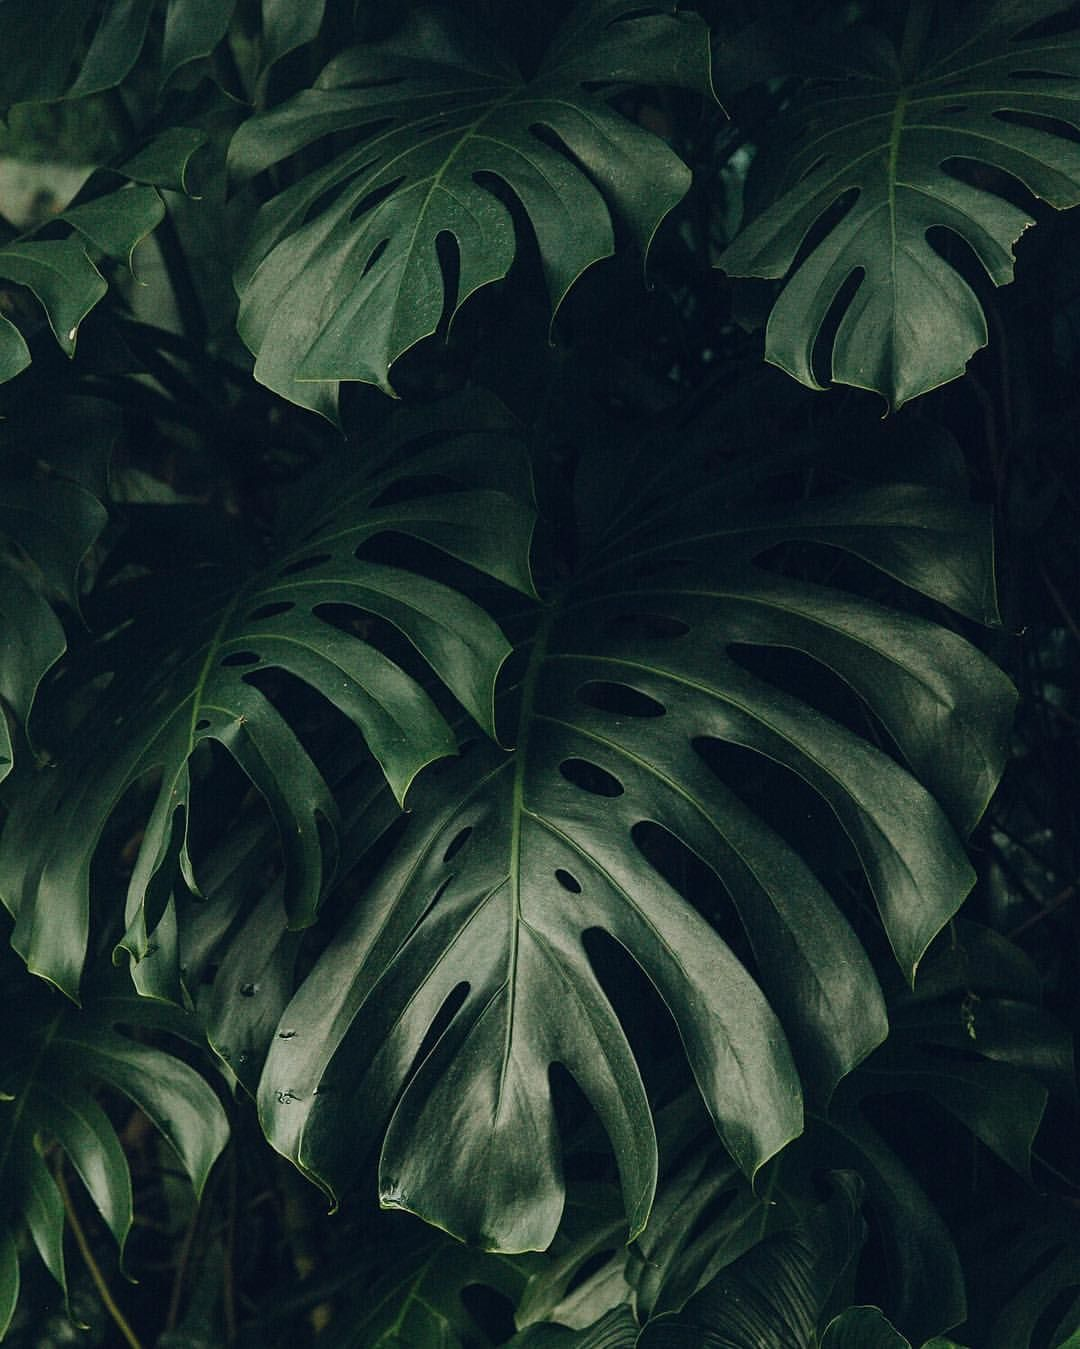 8 504 Likes 60 Comments Haarkon India Magnus Haarkon On Instagram A Big Whopper For Monsteramonday Plants Plant Wallpaper Indoor Tropical Plants